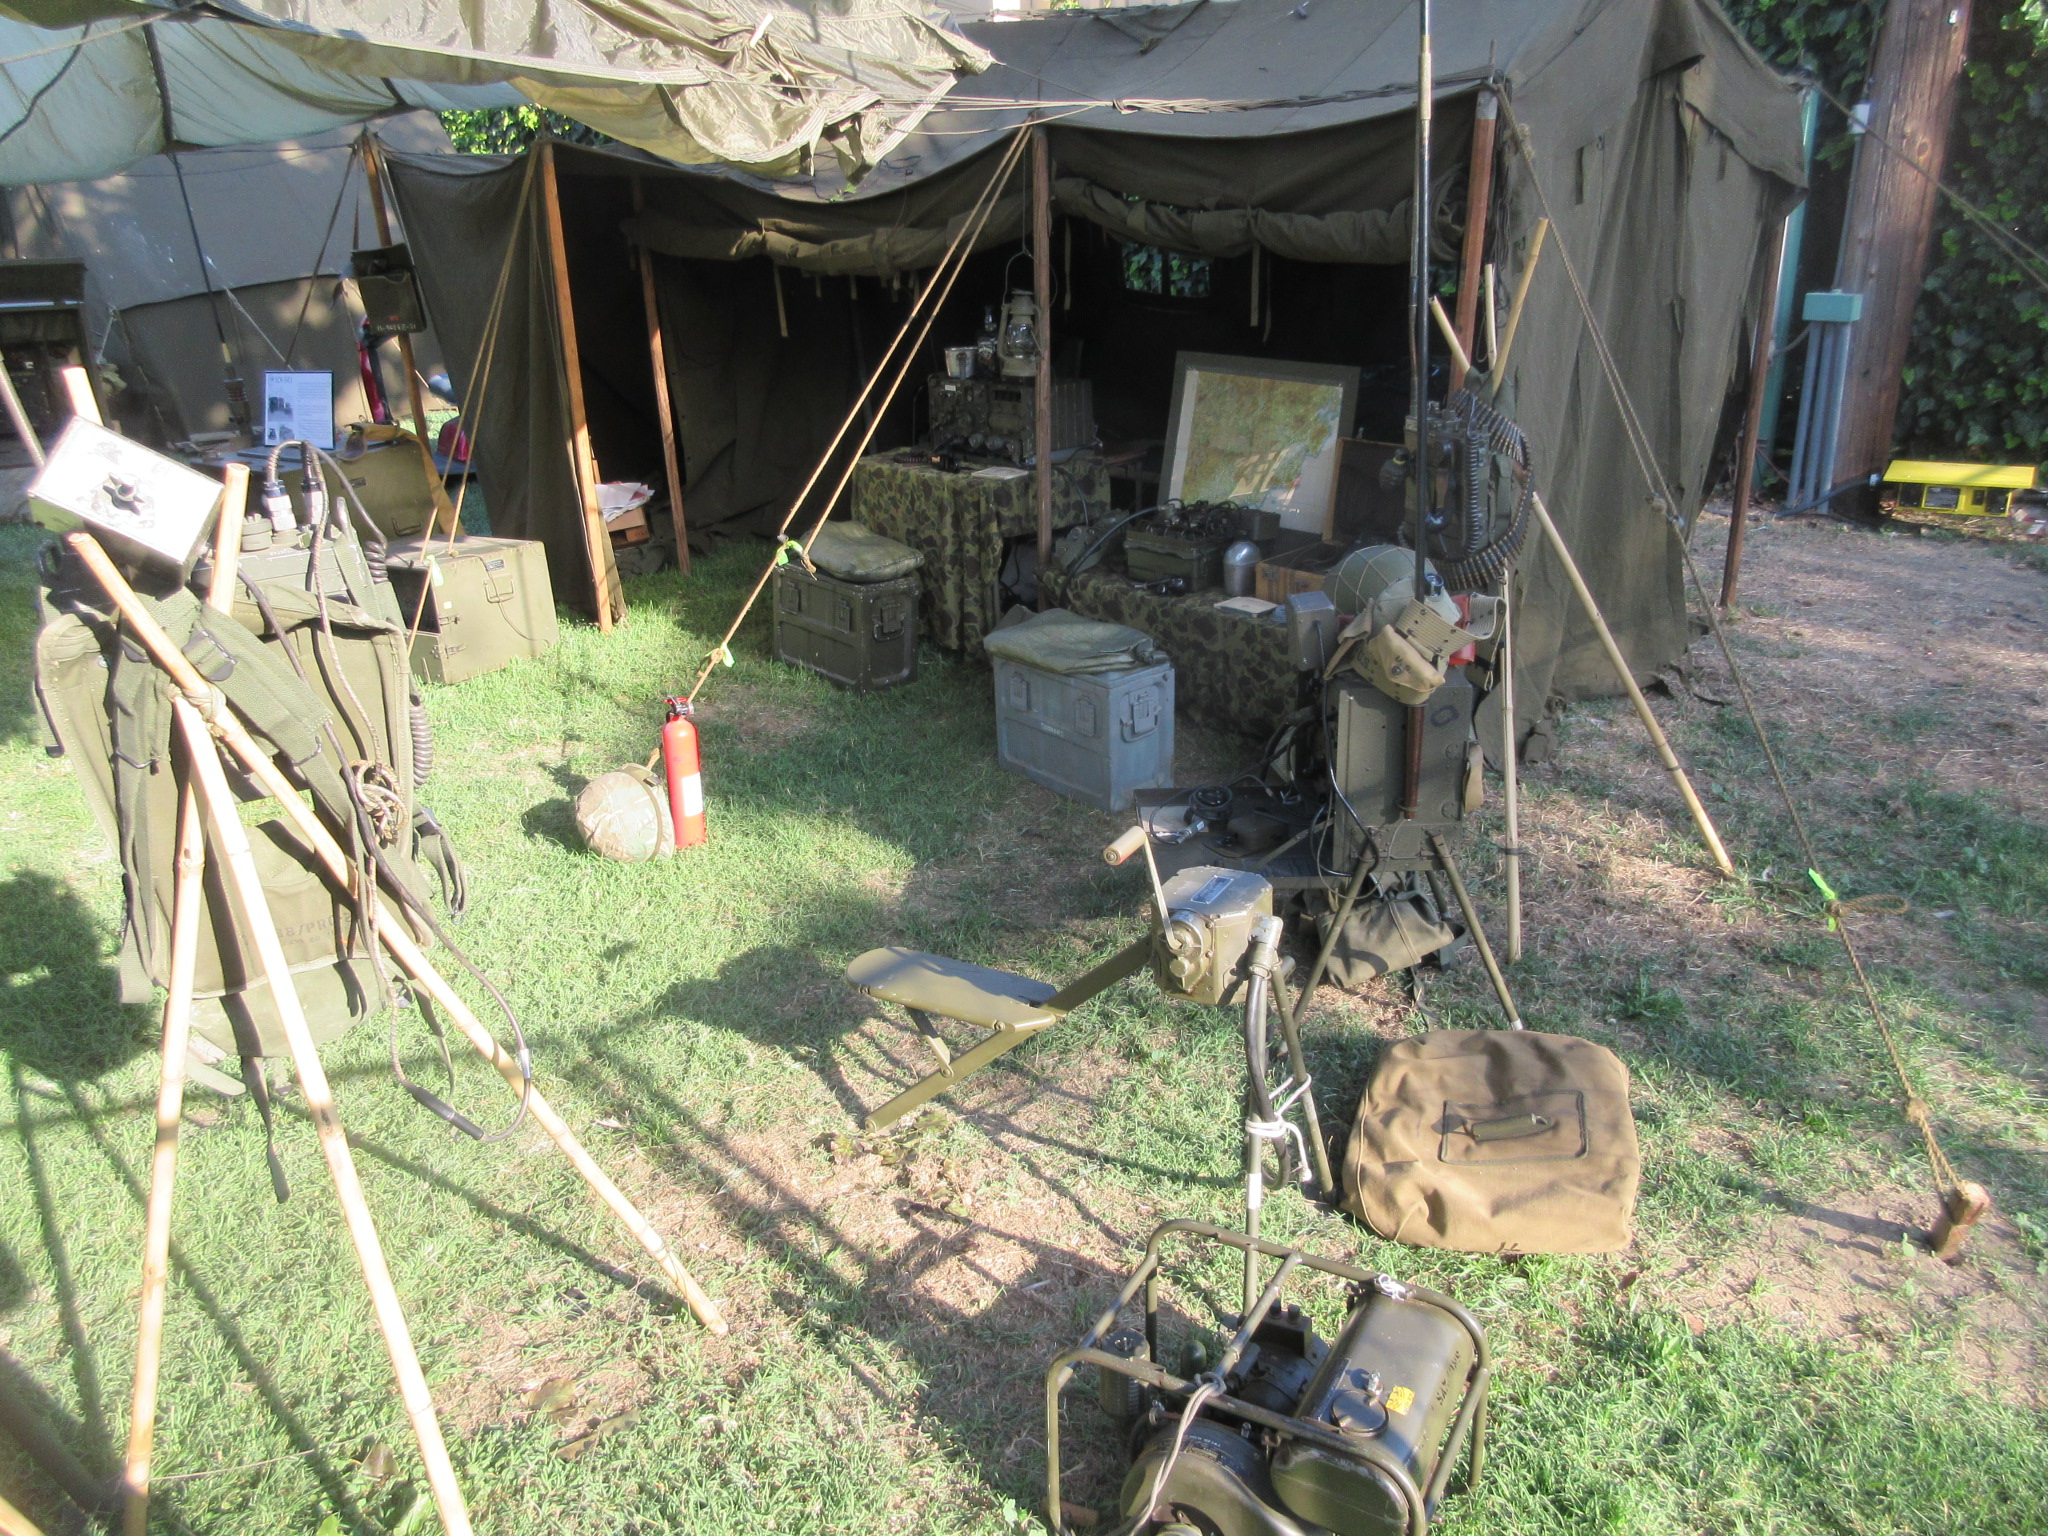 Command Post Tent and gear